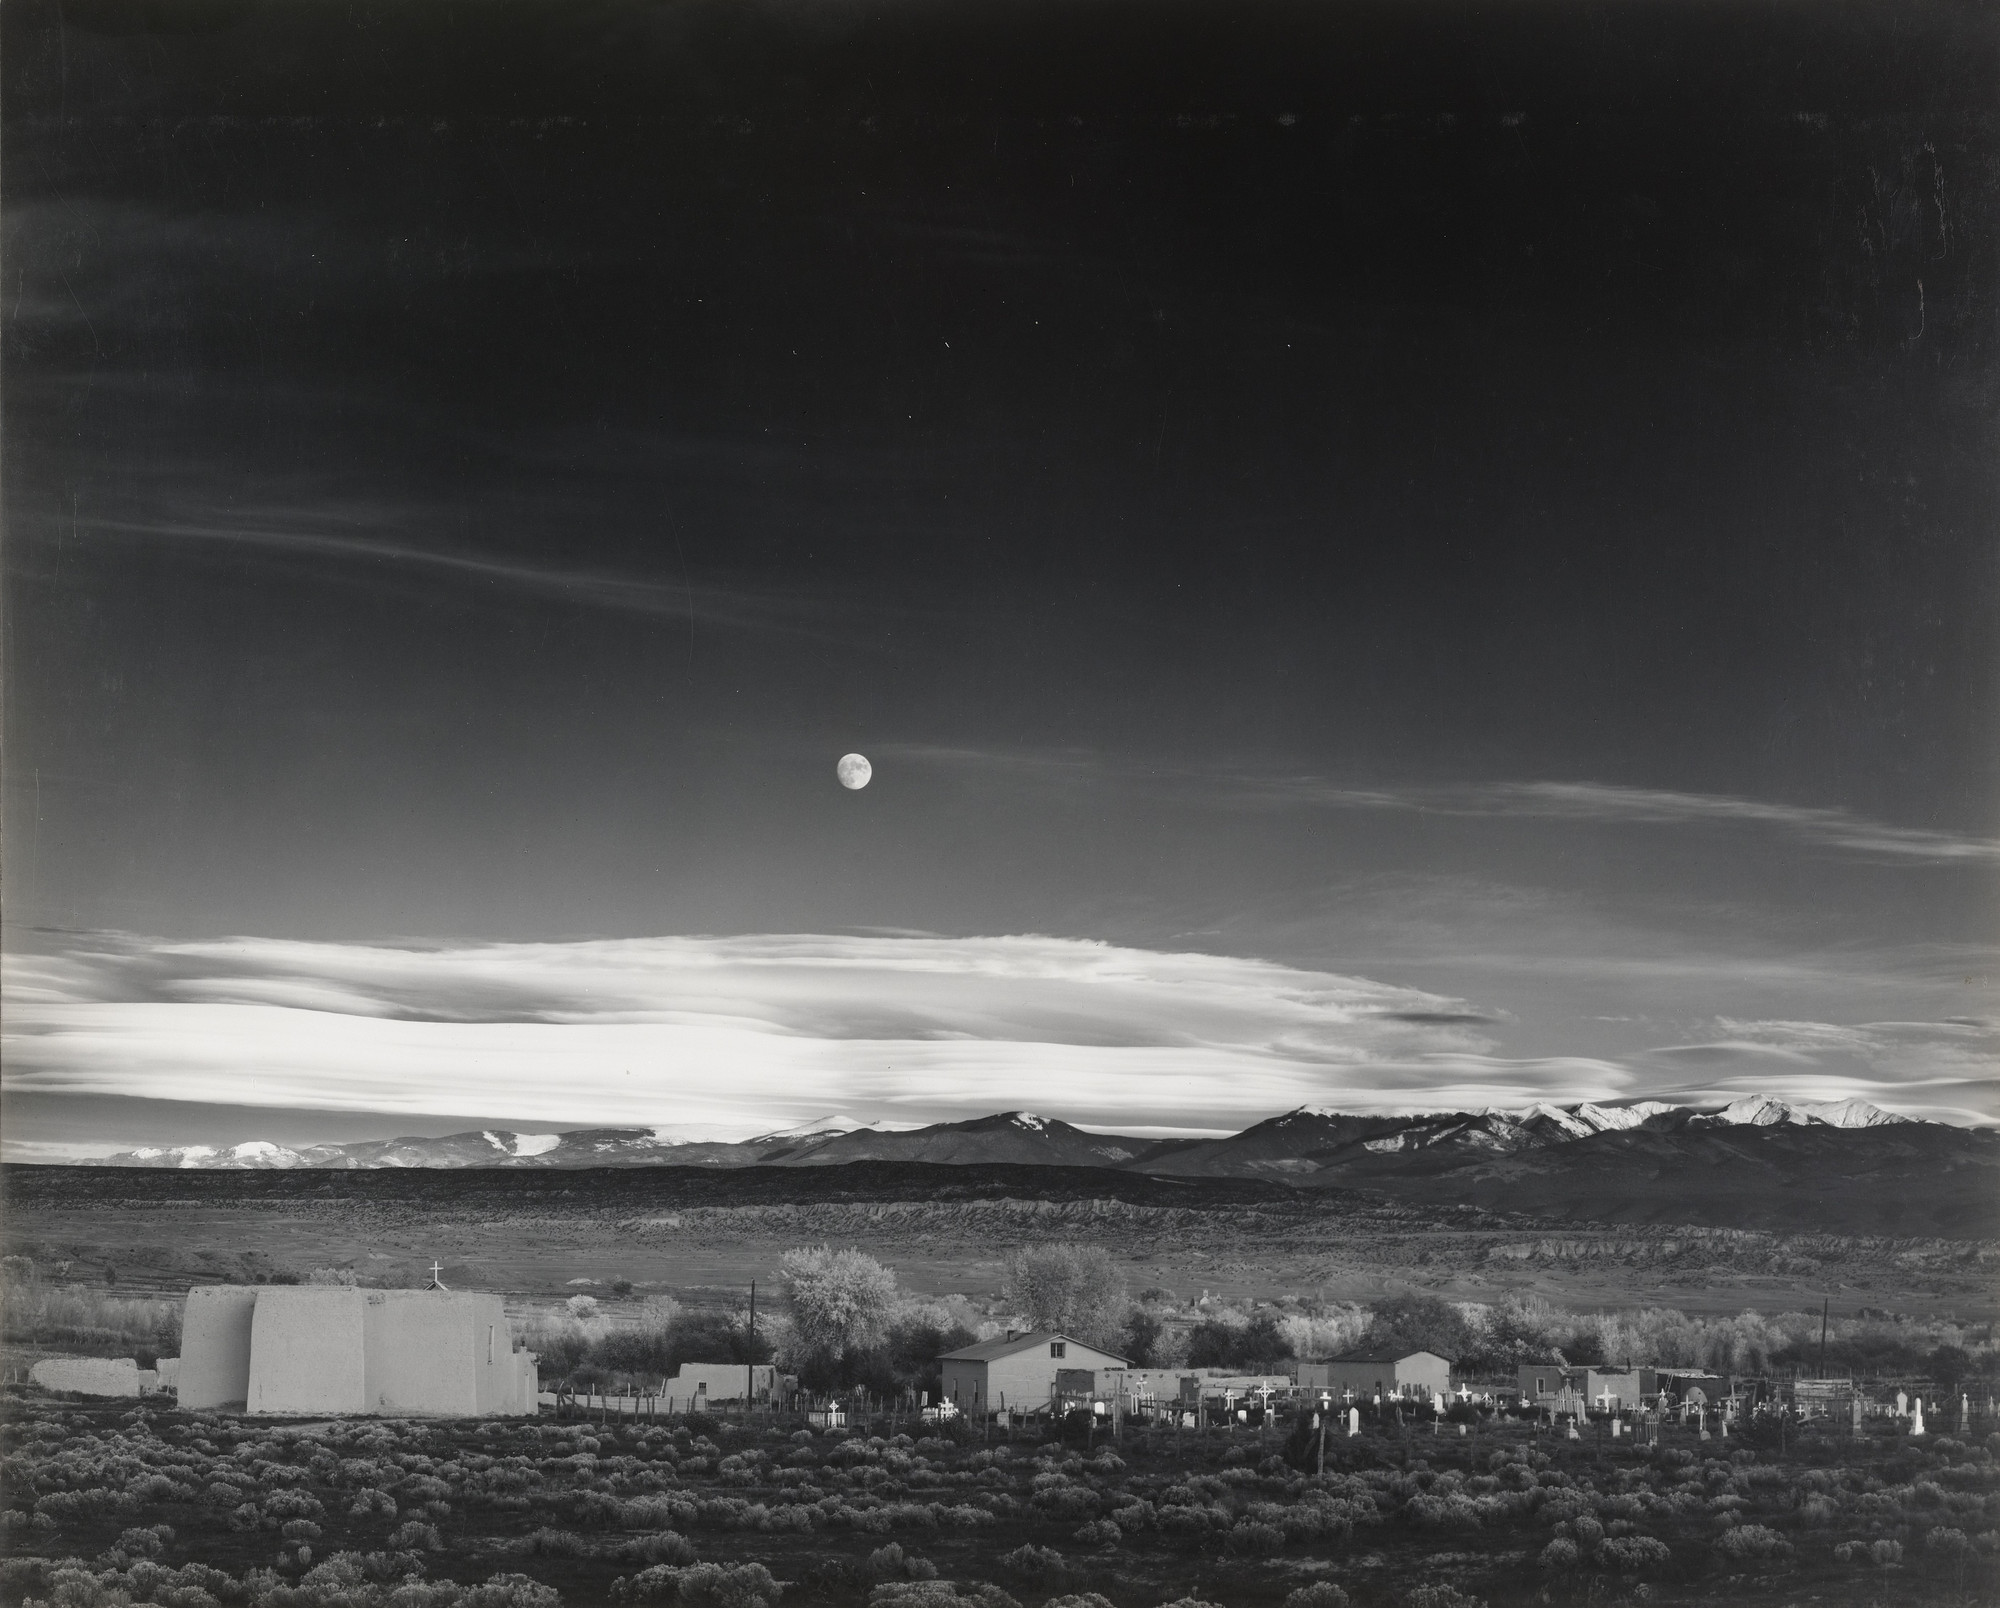 Ansel Adams. Moonrise, Hernandez, New Mexico. 1941